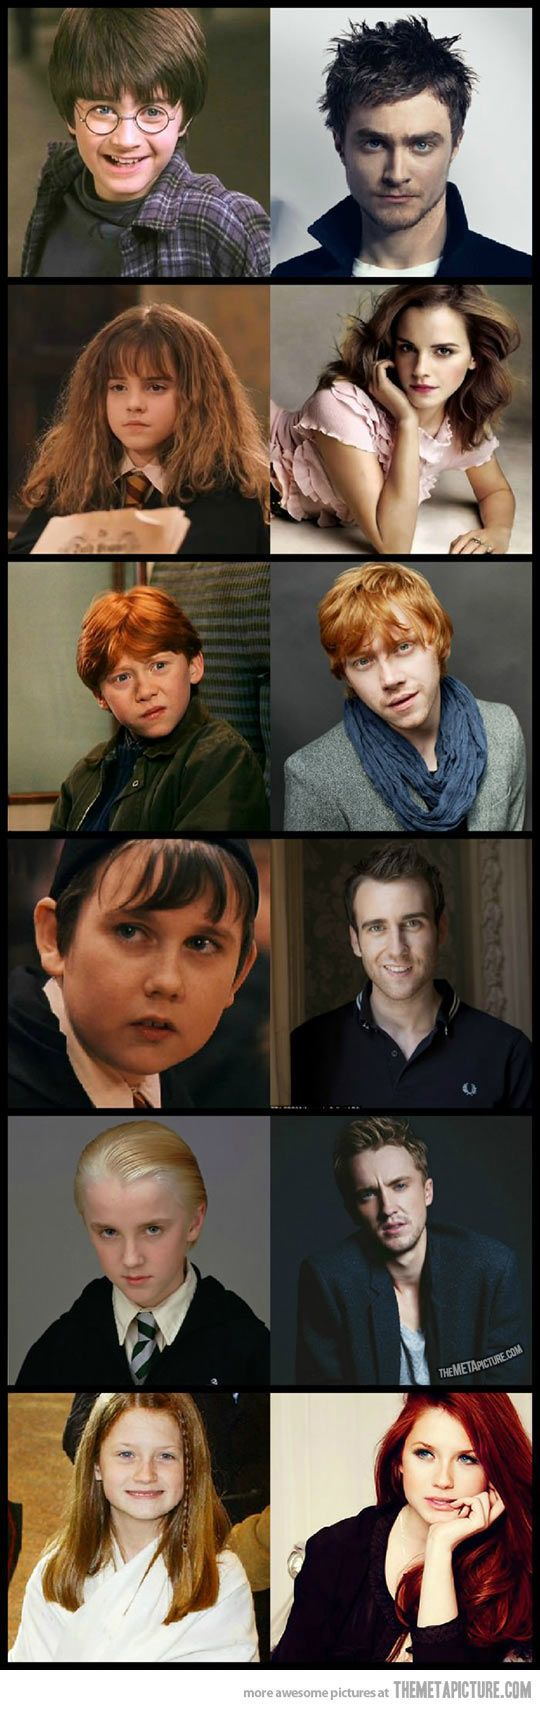 Harry Potter then and now.